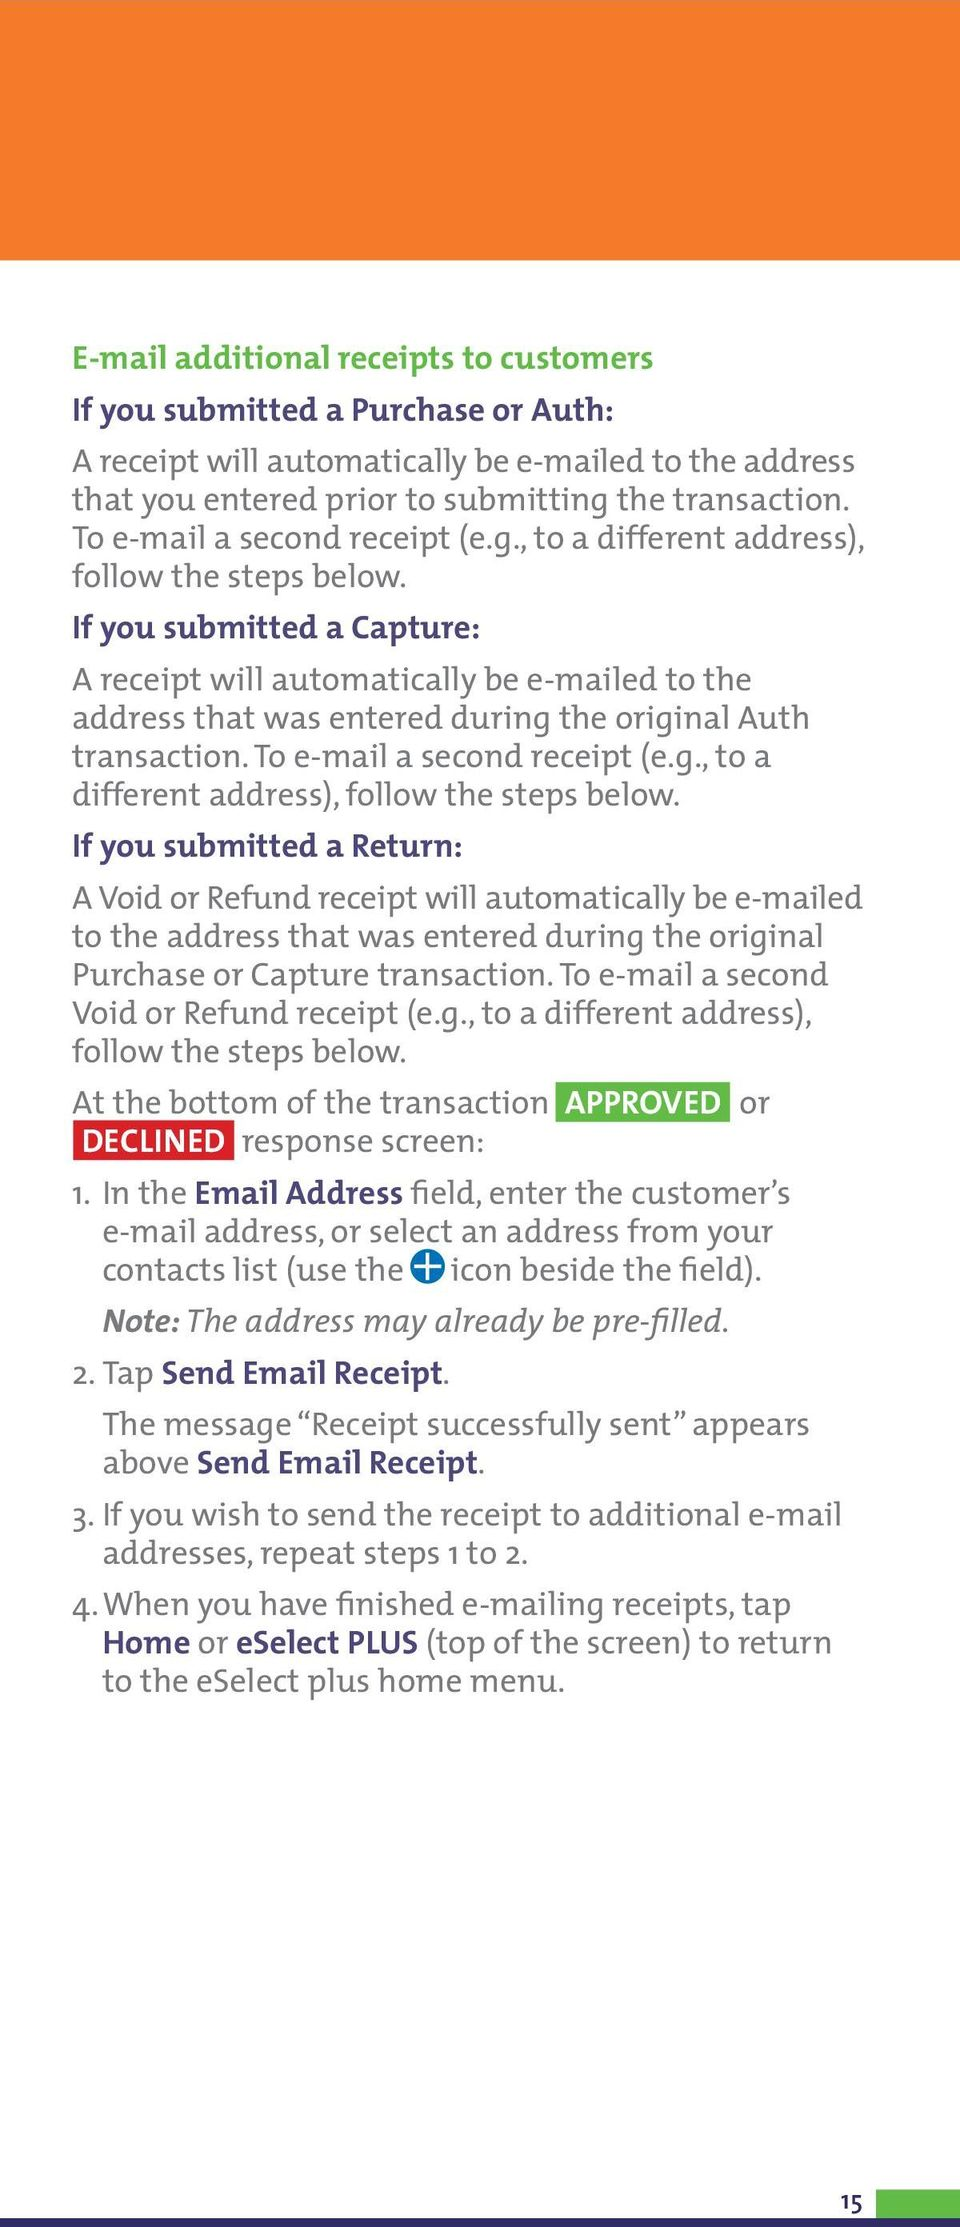 If you submitted a Capture: A receipt will automatically be e-mailed to the address that was entered during the original Auth transaction.